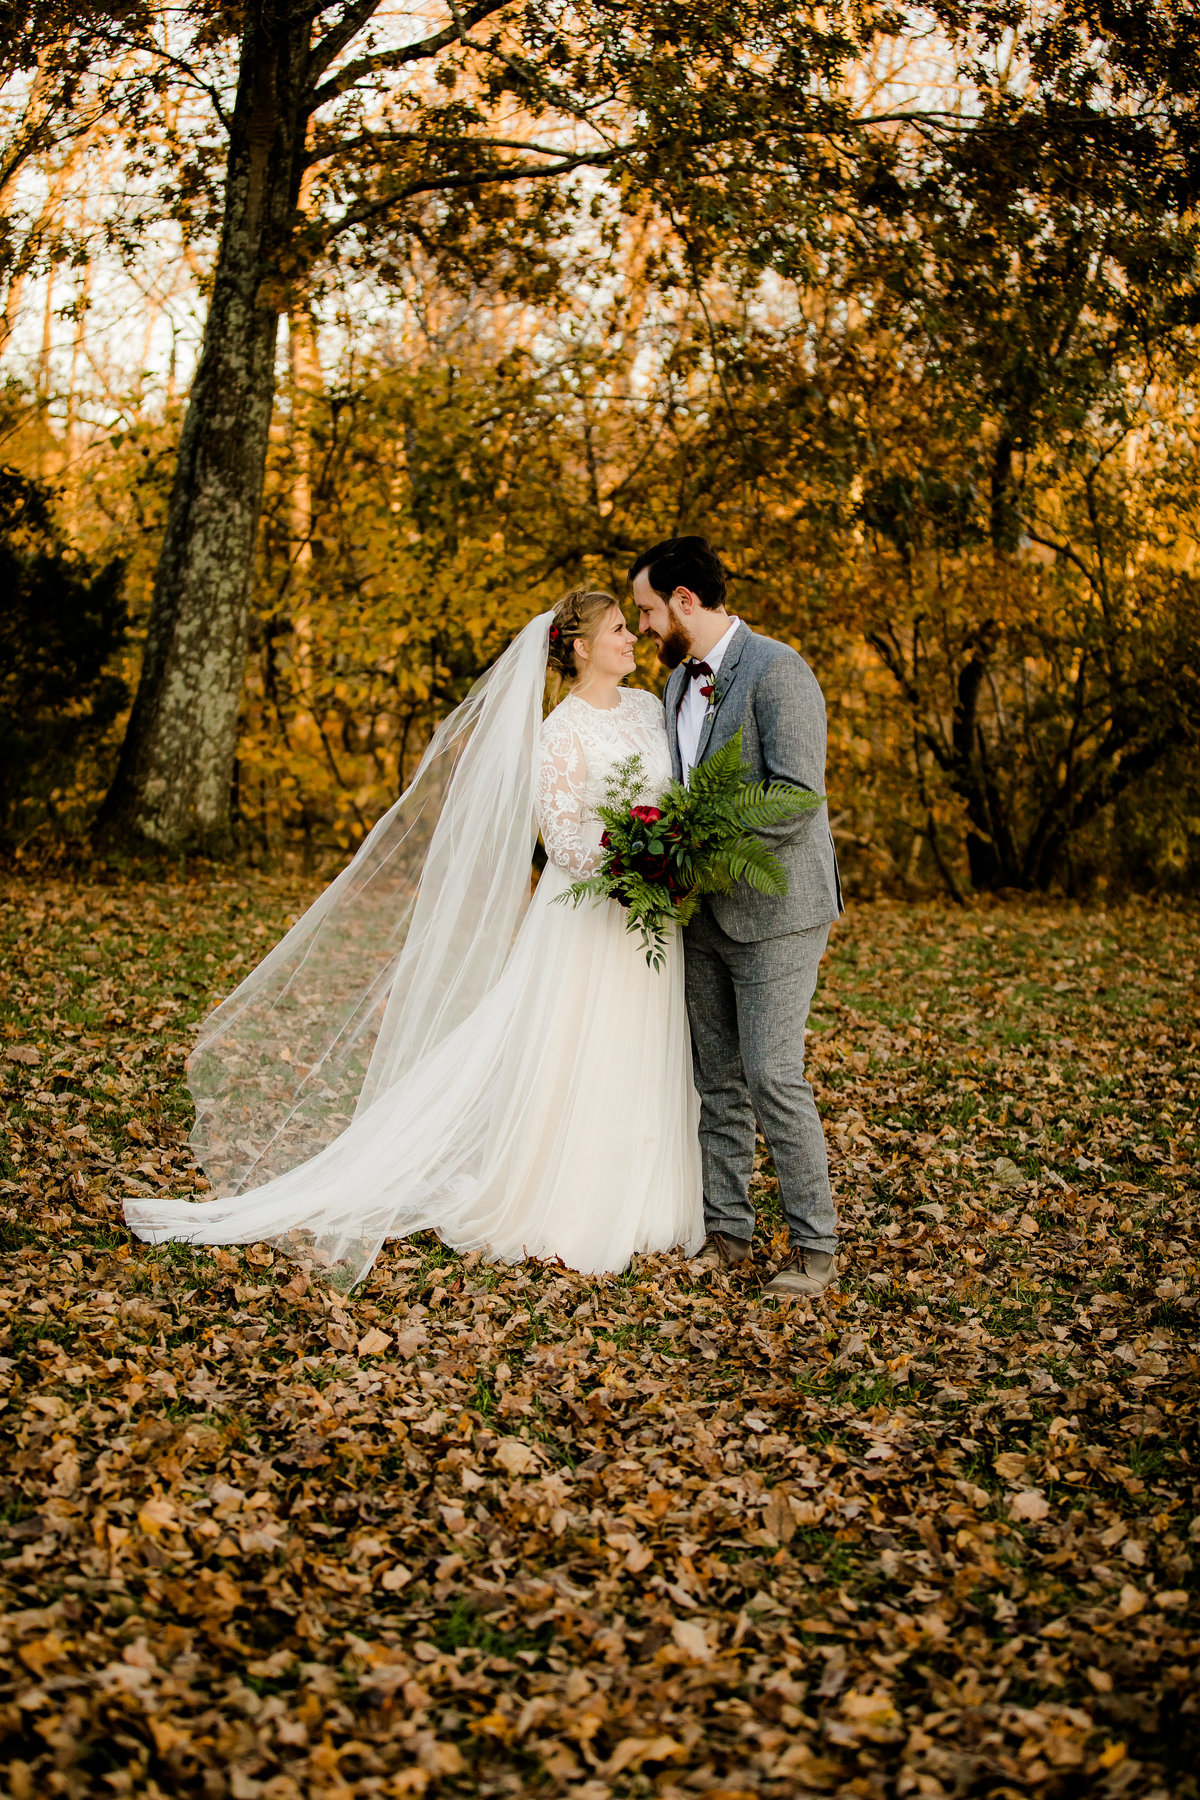 Cactus Creek Barn - Dickson Wedding - Dickson TN - Outdoor Weddings - Outdoor Wedding - Nashville Wedding - Nashville Weddings - Nashville Wedding Photographer - Nashville Wedding Photographers122